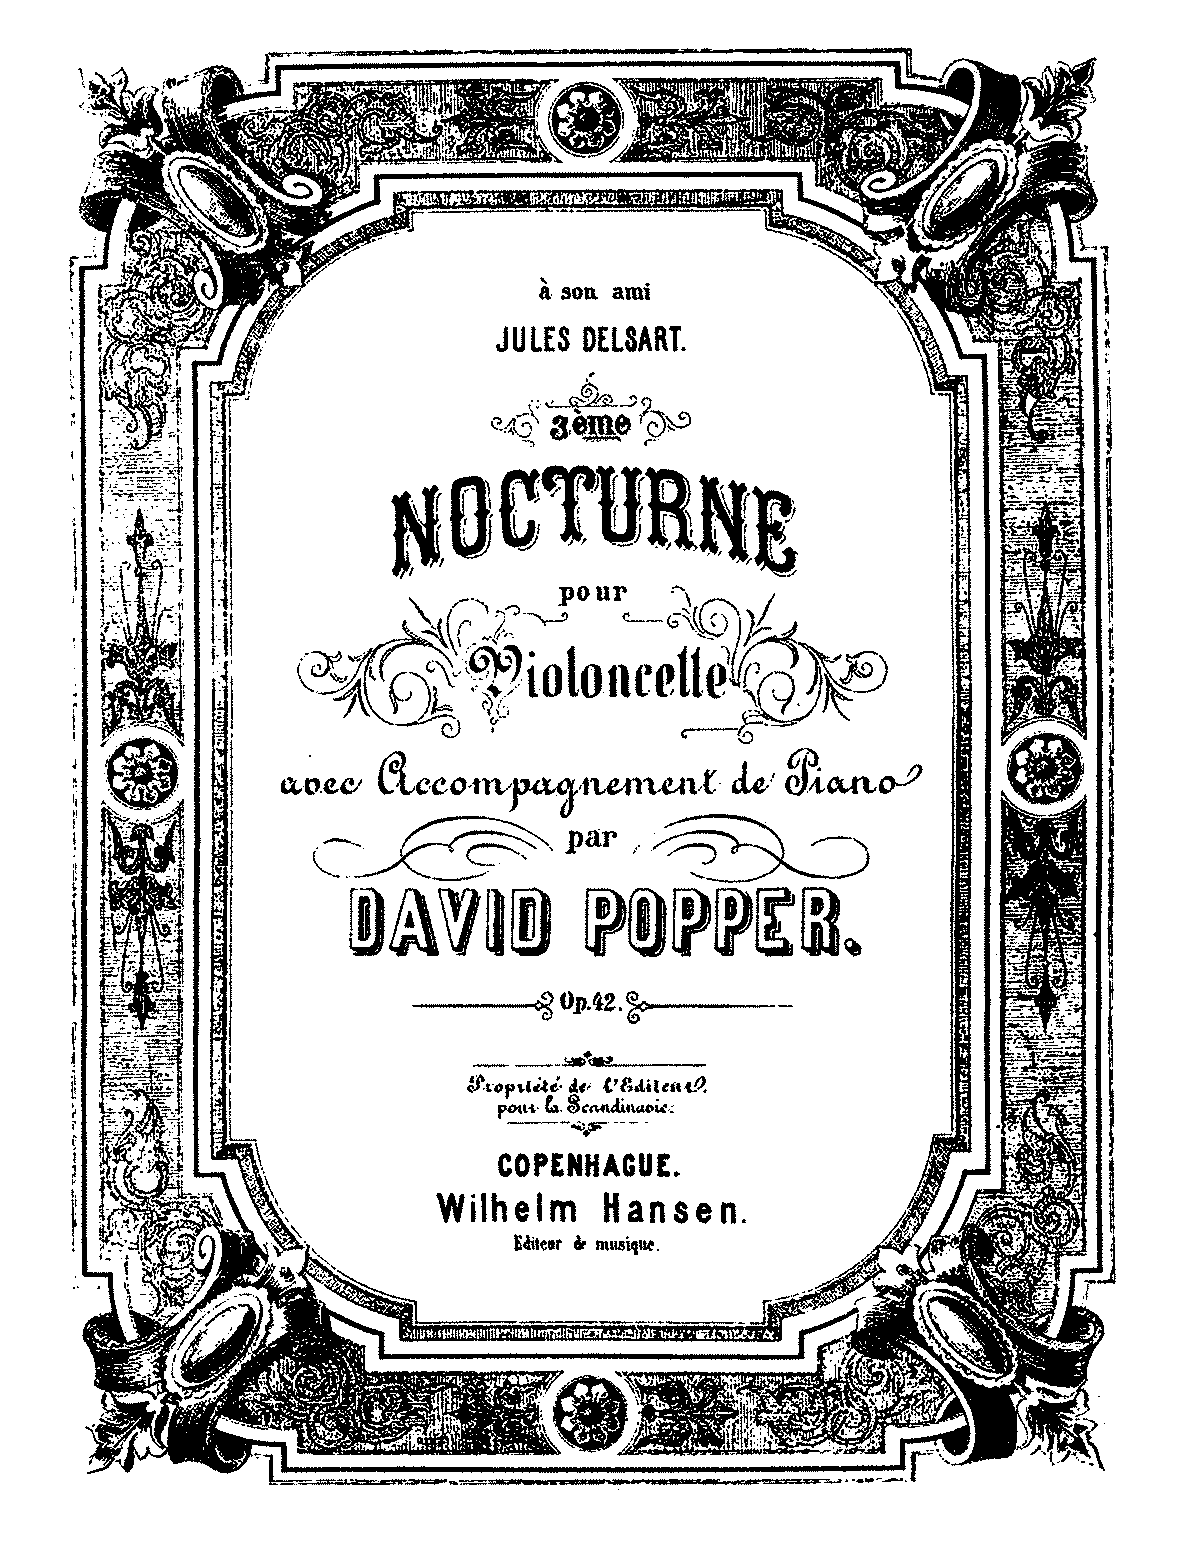 PMLP211552-Popper - Nocturne No3 Op42 for cello and piano pno.pdf